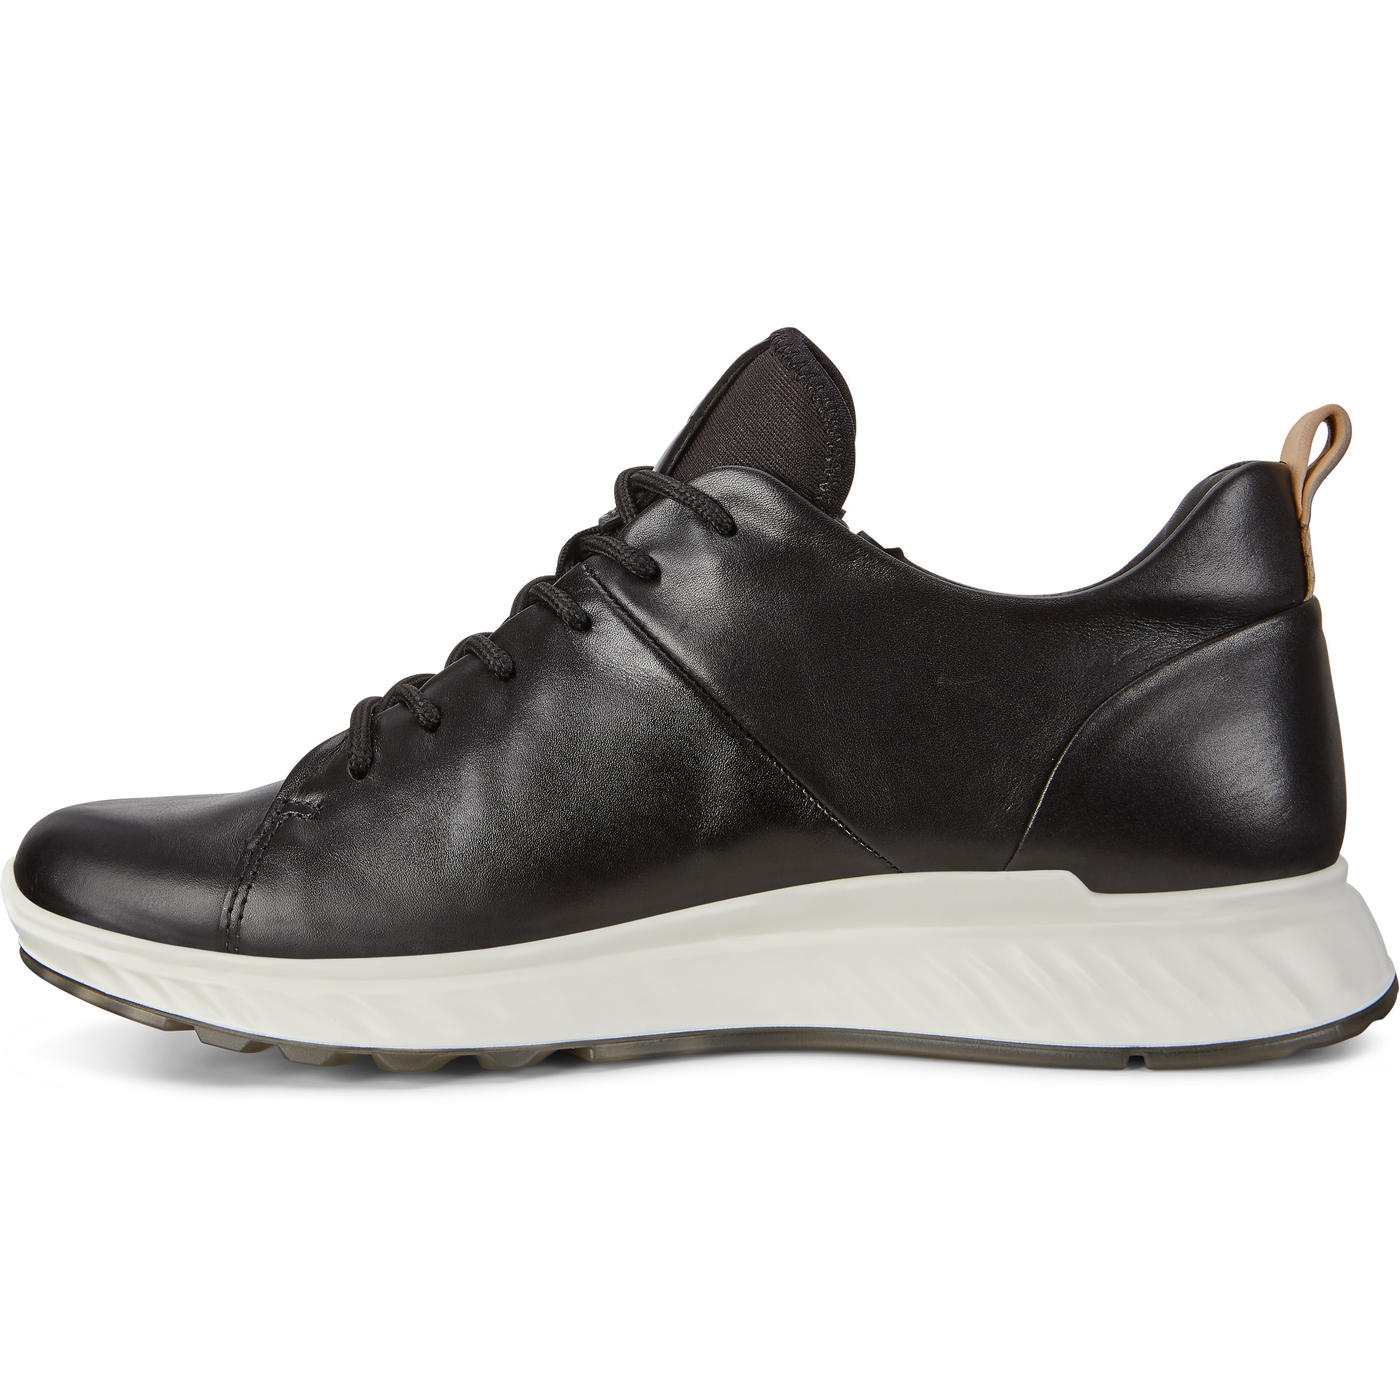 ECCO ST1 Mens Mid Cut Athleisure Sneaker Lace with Zip